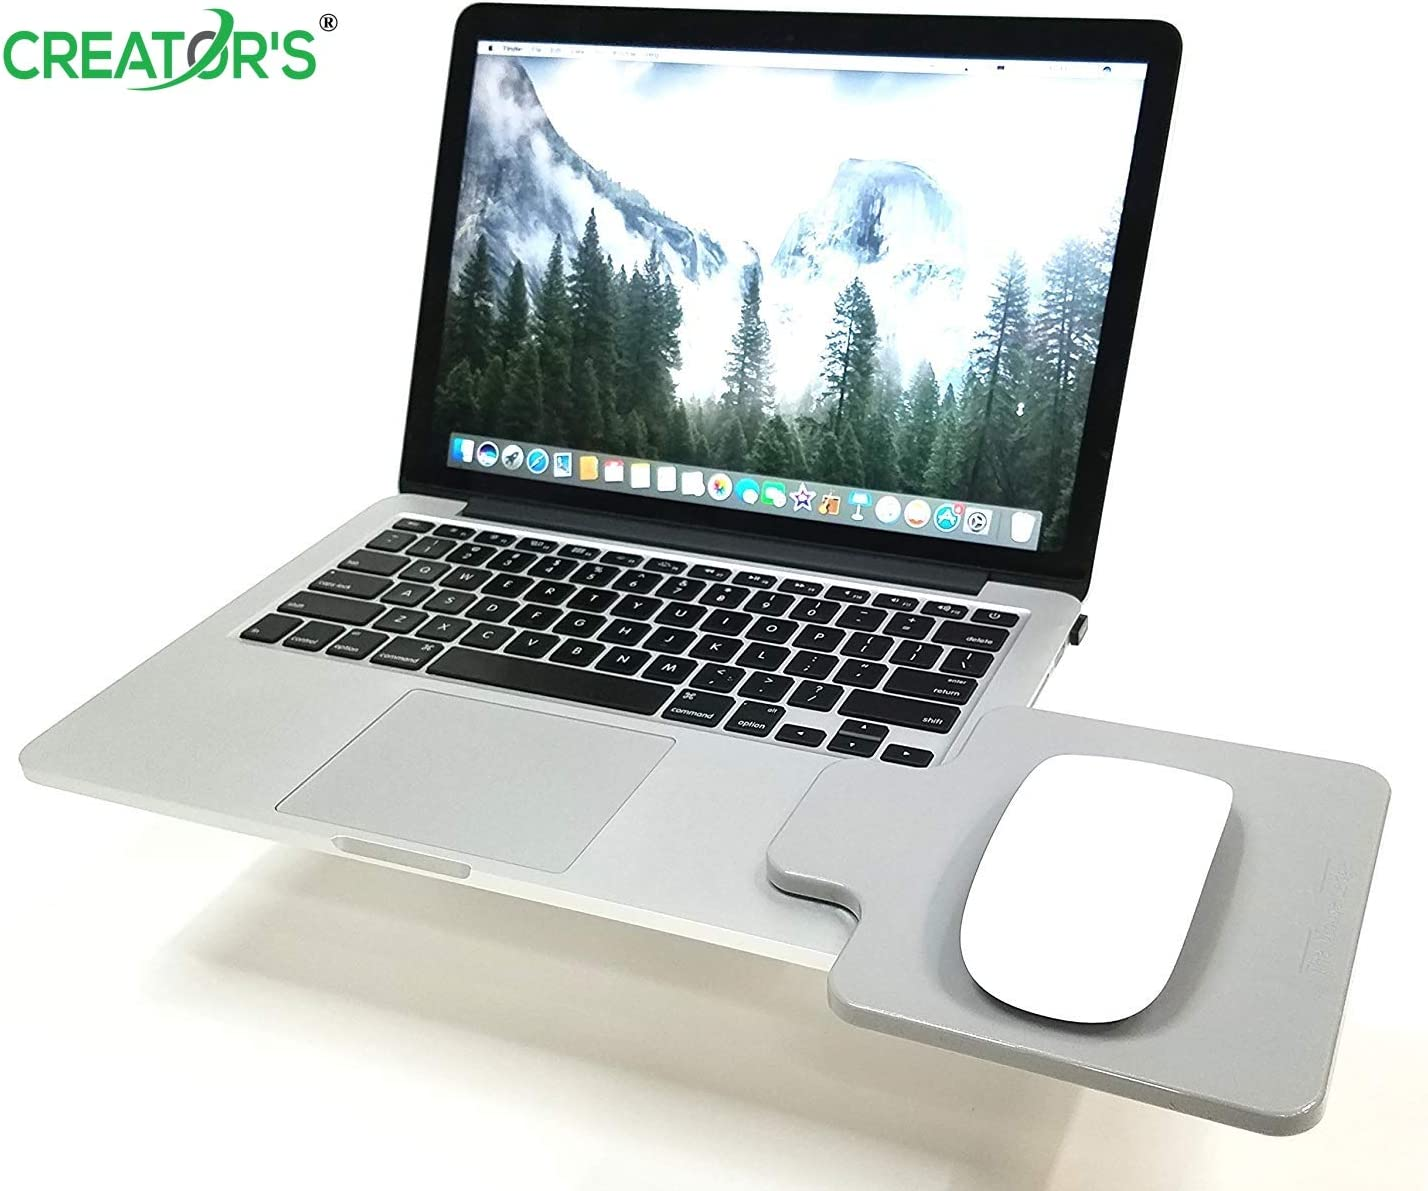 Creator's Mouse Ledge - Gray - Platform Laptop Chromebook Computer Extension - 100% MADE IN USA - SLICK Surface W/EDGE GUARD - Attach Directly To Either Side Of Laptop To Create A Portable Workstation